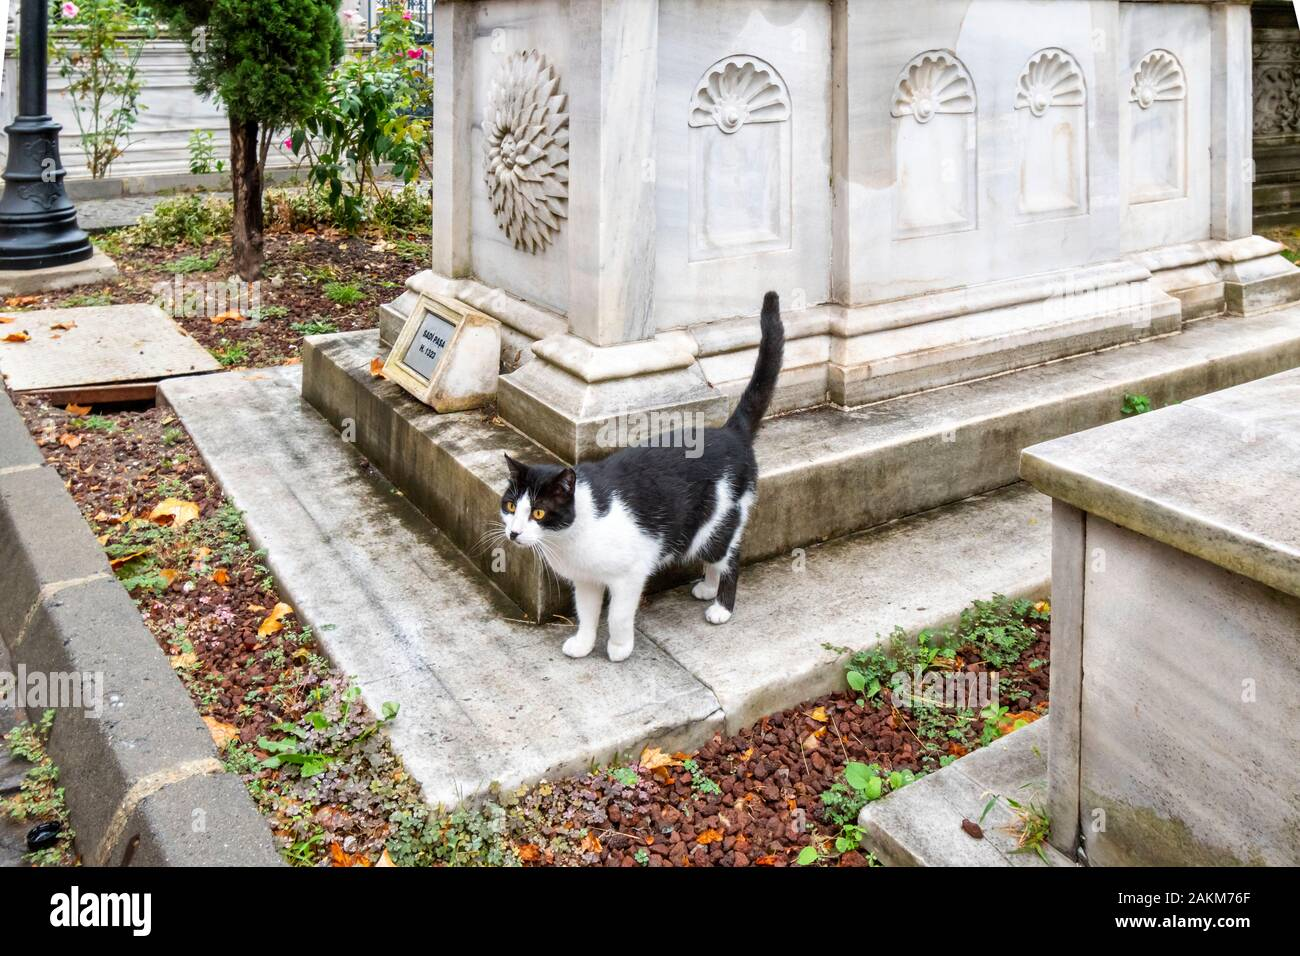 A stray black and white cat stands on the medieval tomb of Sultan Sadi Pasa's tomb in the historic interior courtyard of the Ahmet Tevfik Paşa Tomb. Stock Photo